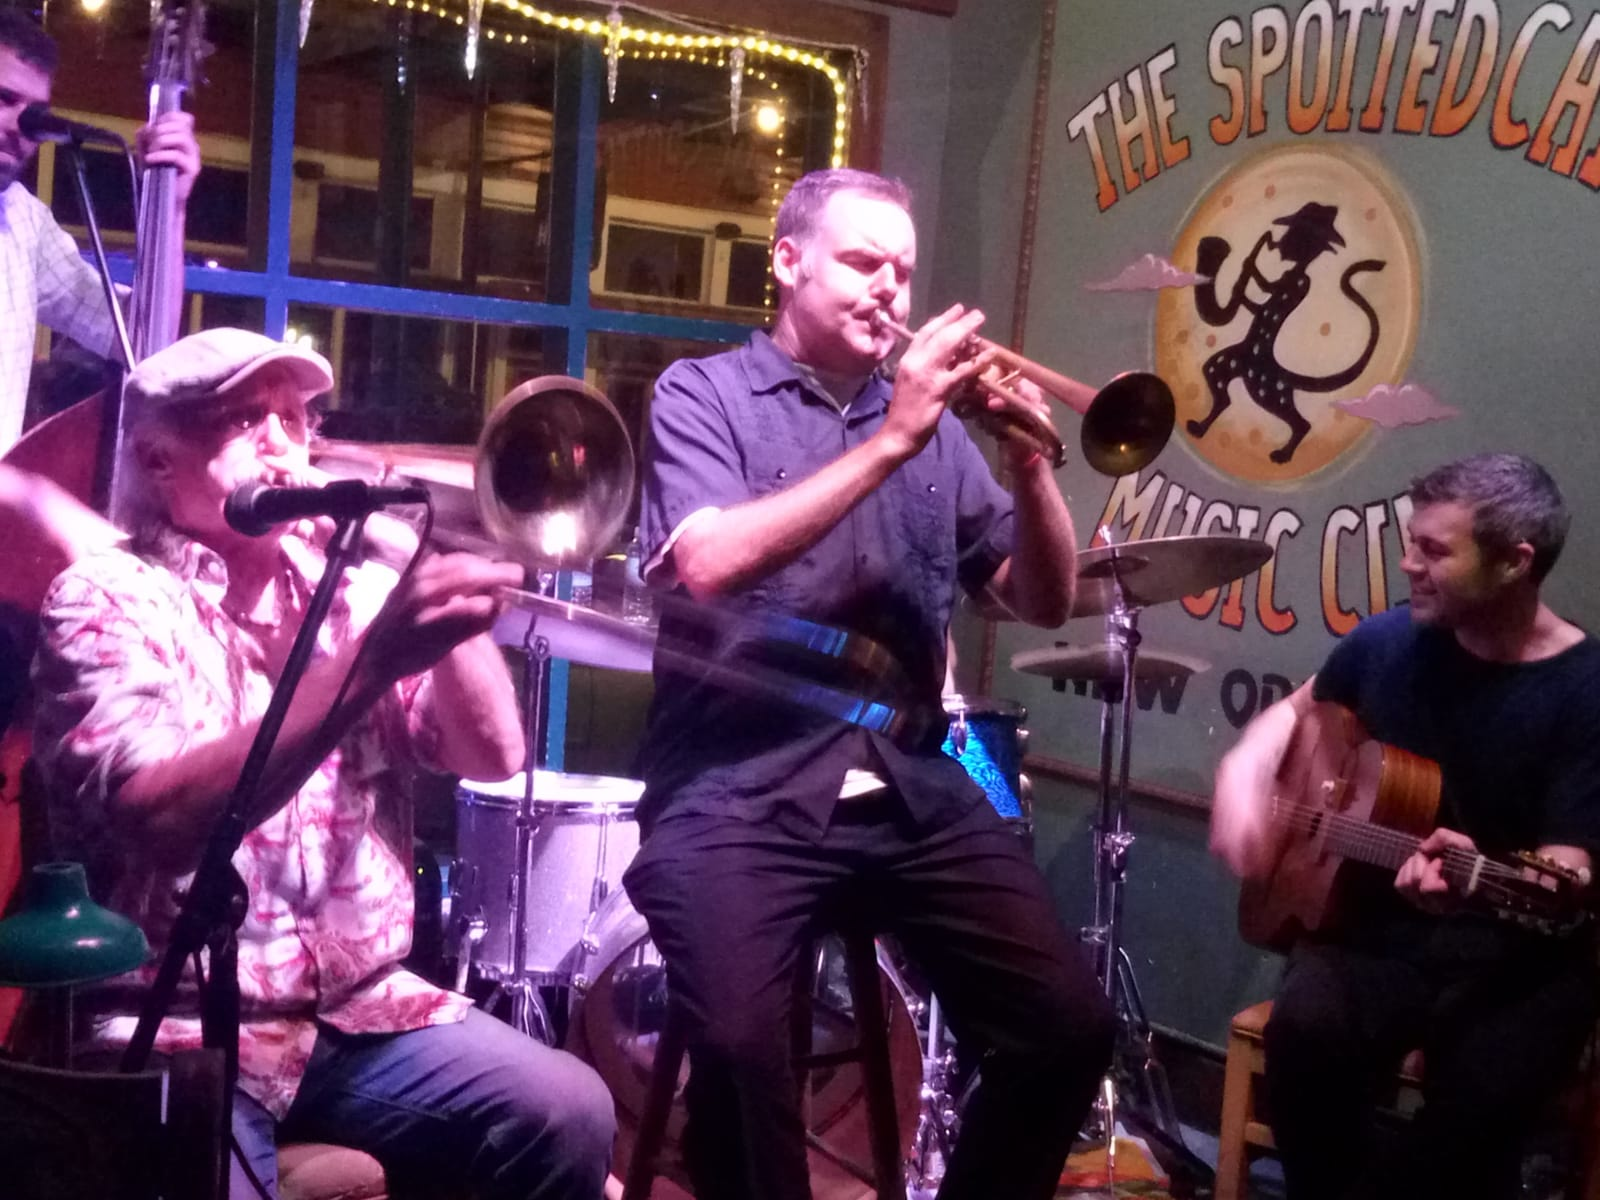 A jazz band at the historical Spotted Cat Music Club in Frenchmen Street. Photo by C. Barros.